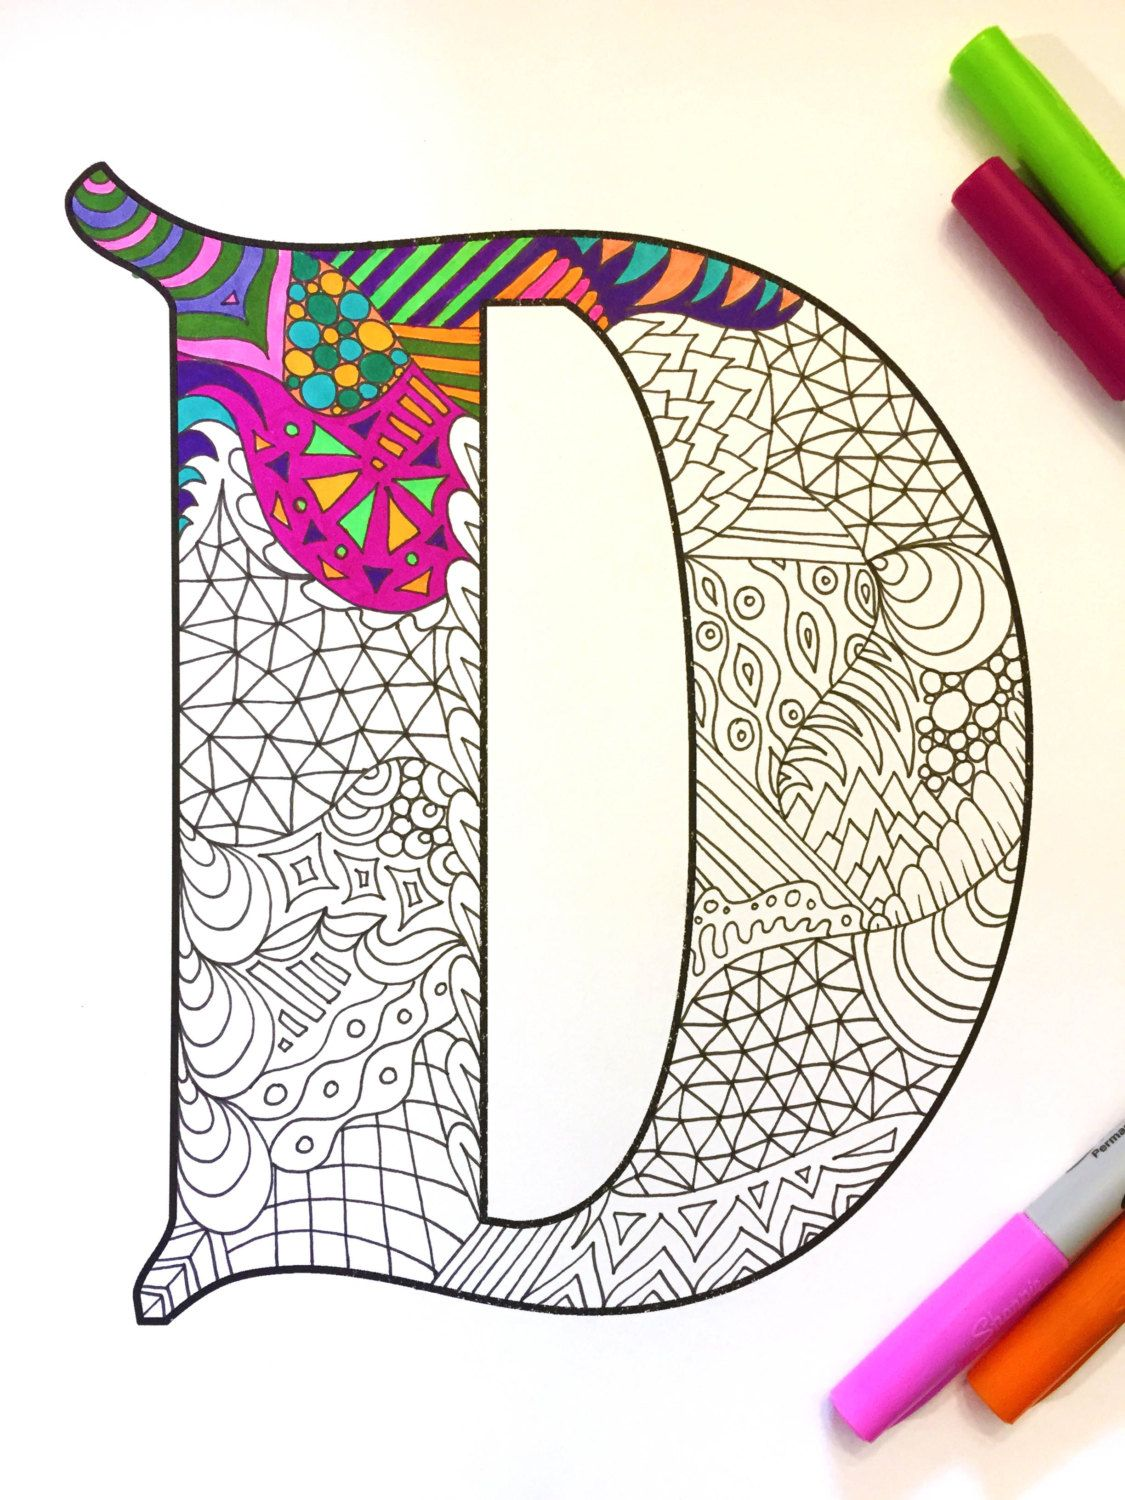 letter d zentangle inspired by the font etsy